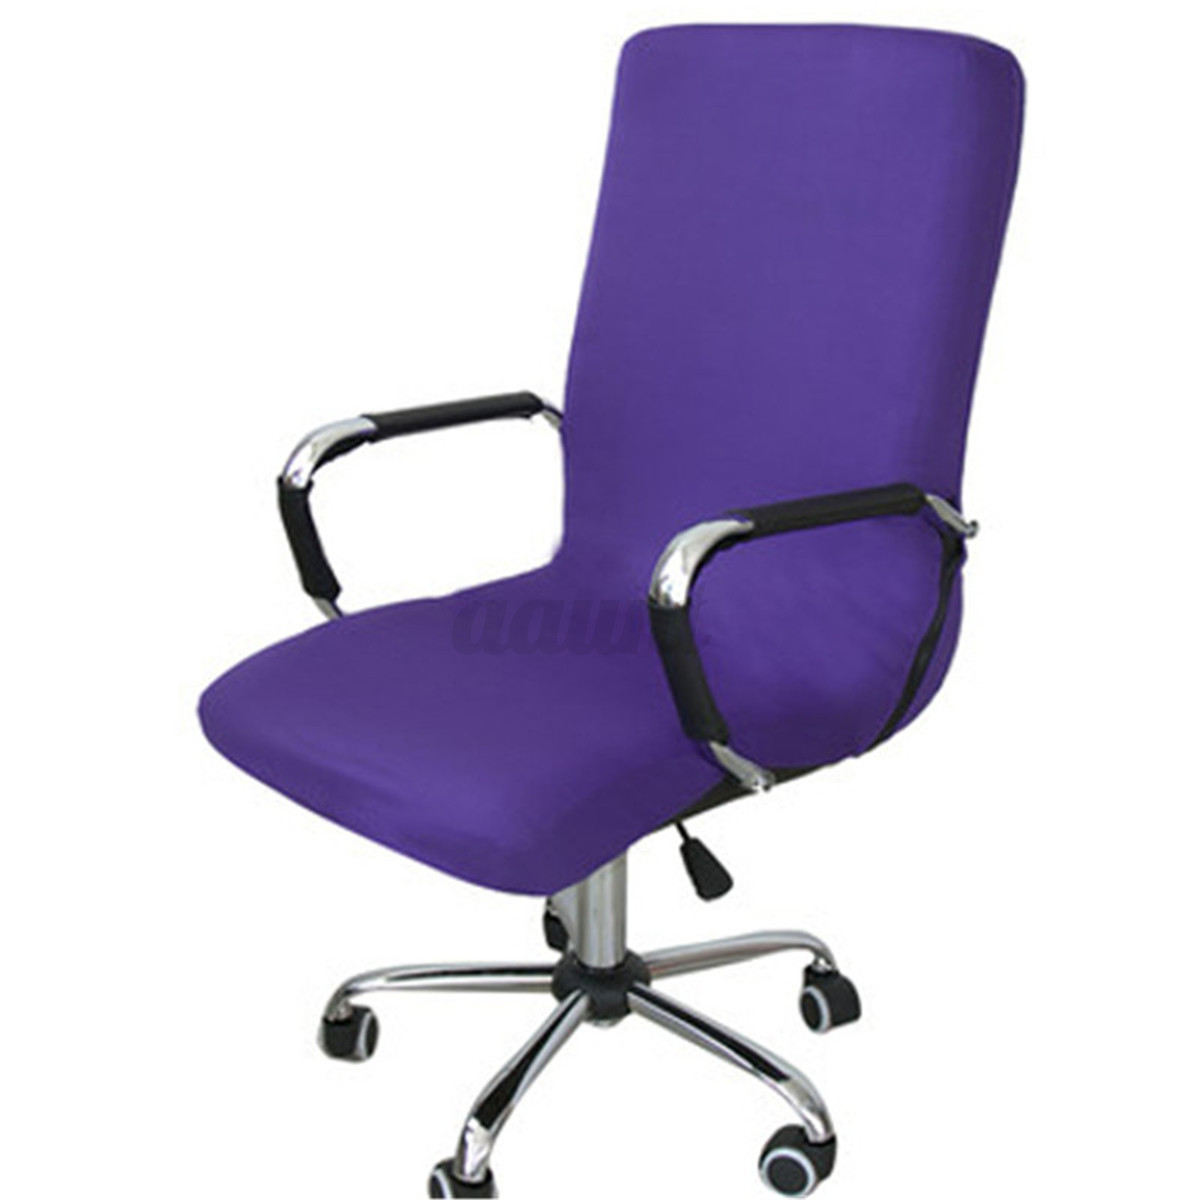 swivel chair covers clear plastic dining chairs nz computer cover stretch office armchair